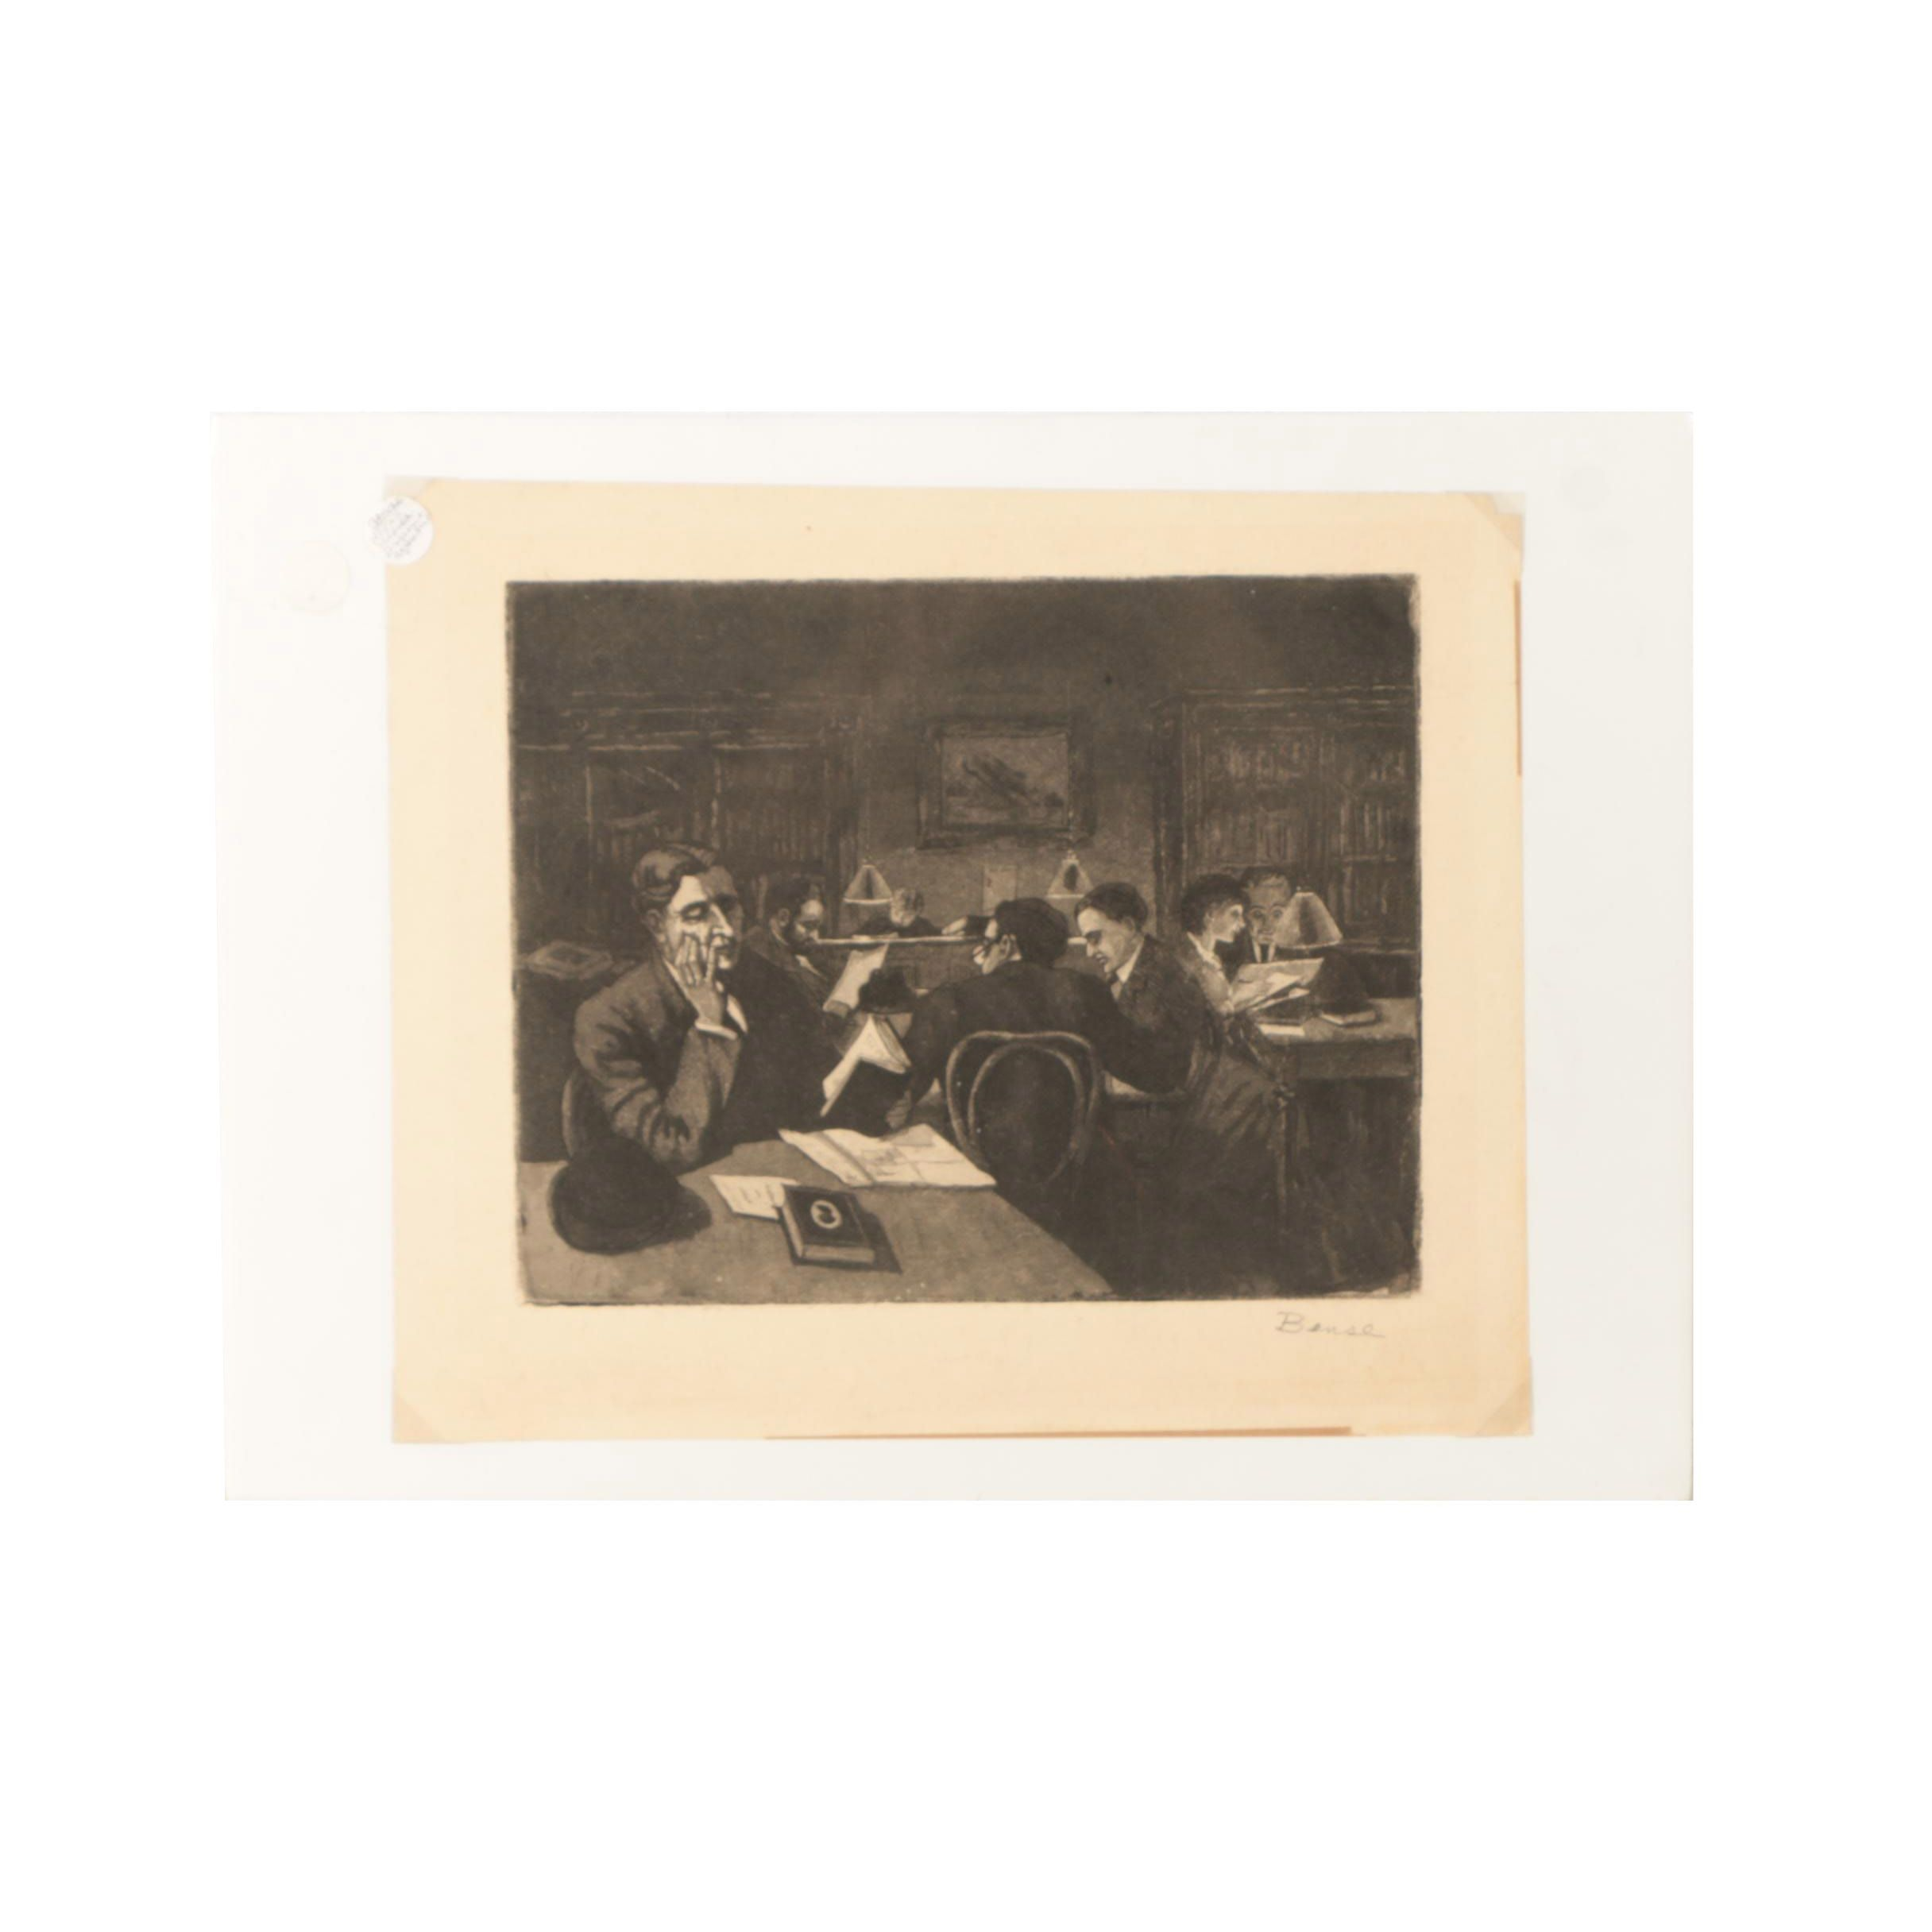 Bense Aquatint Etching on Paper of a Library Scene